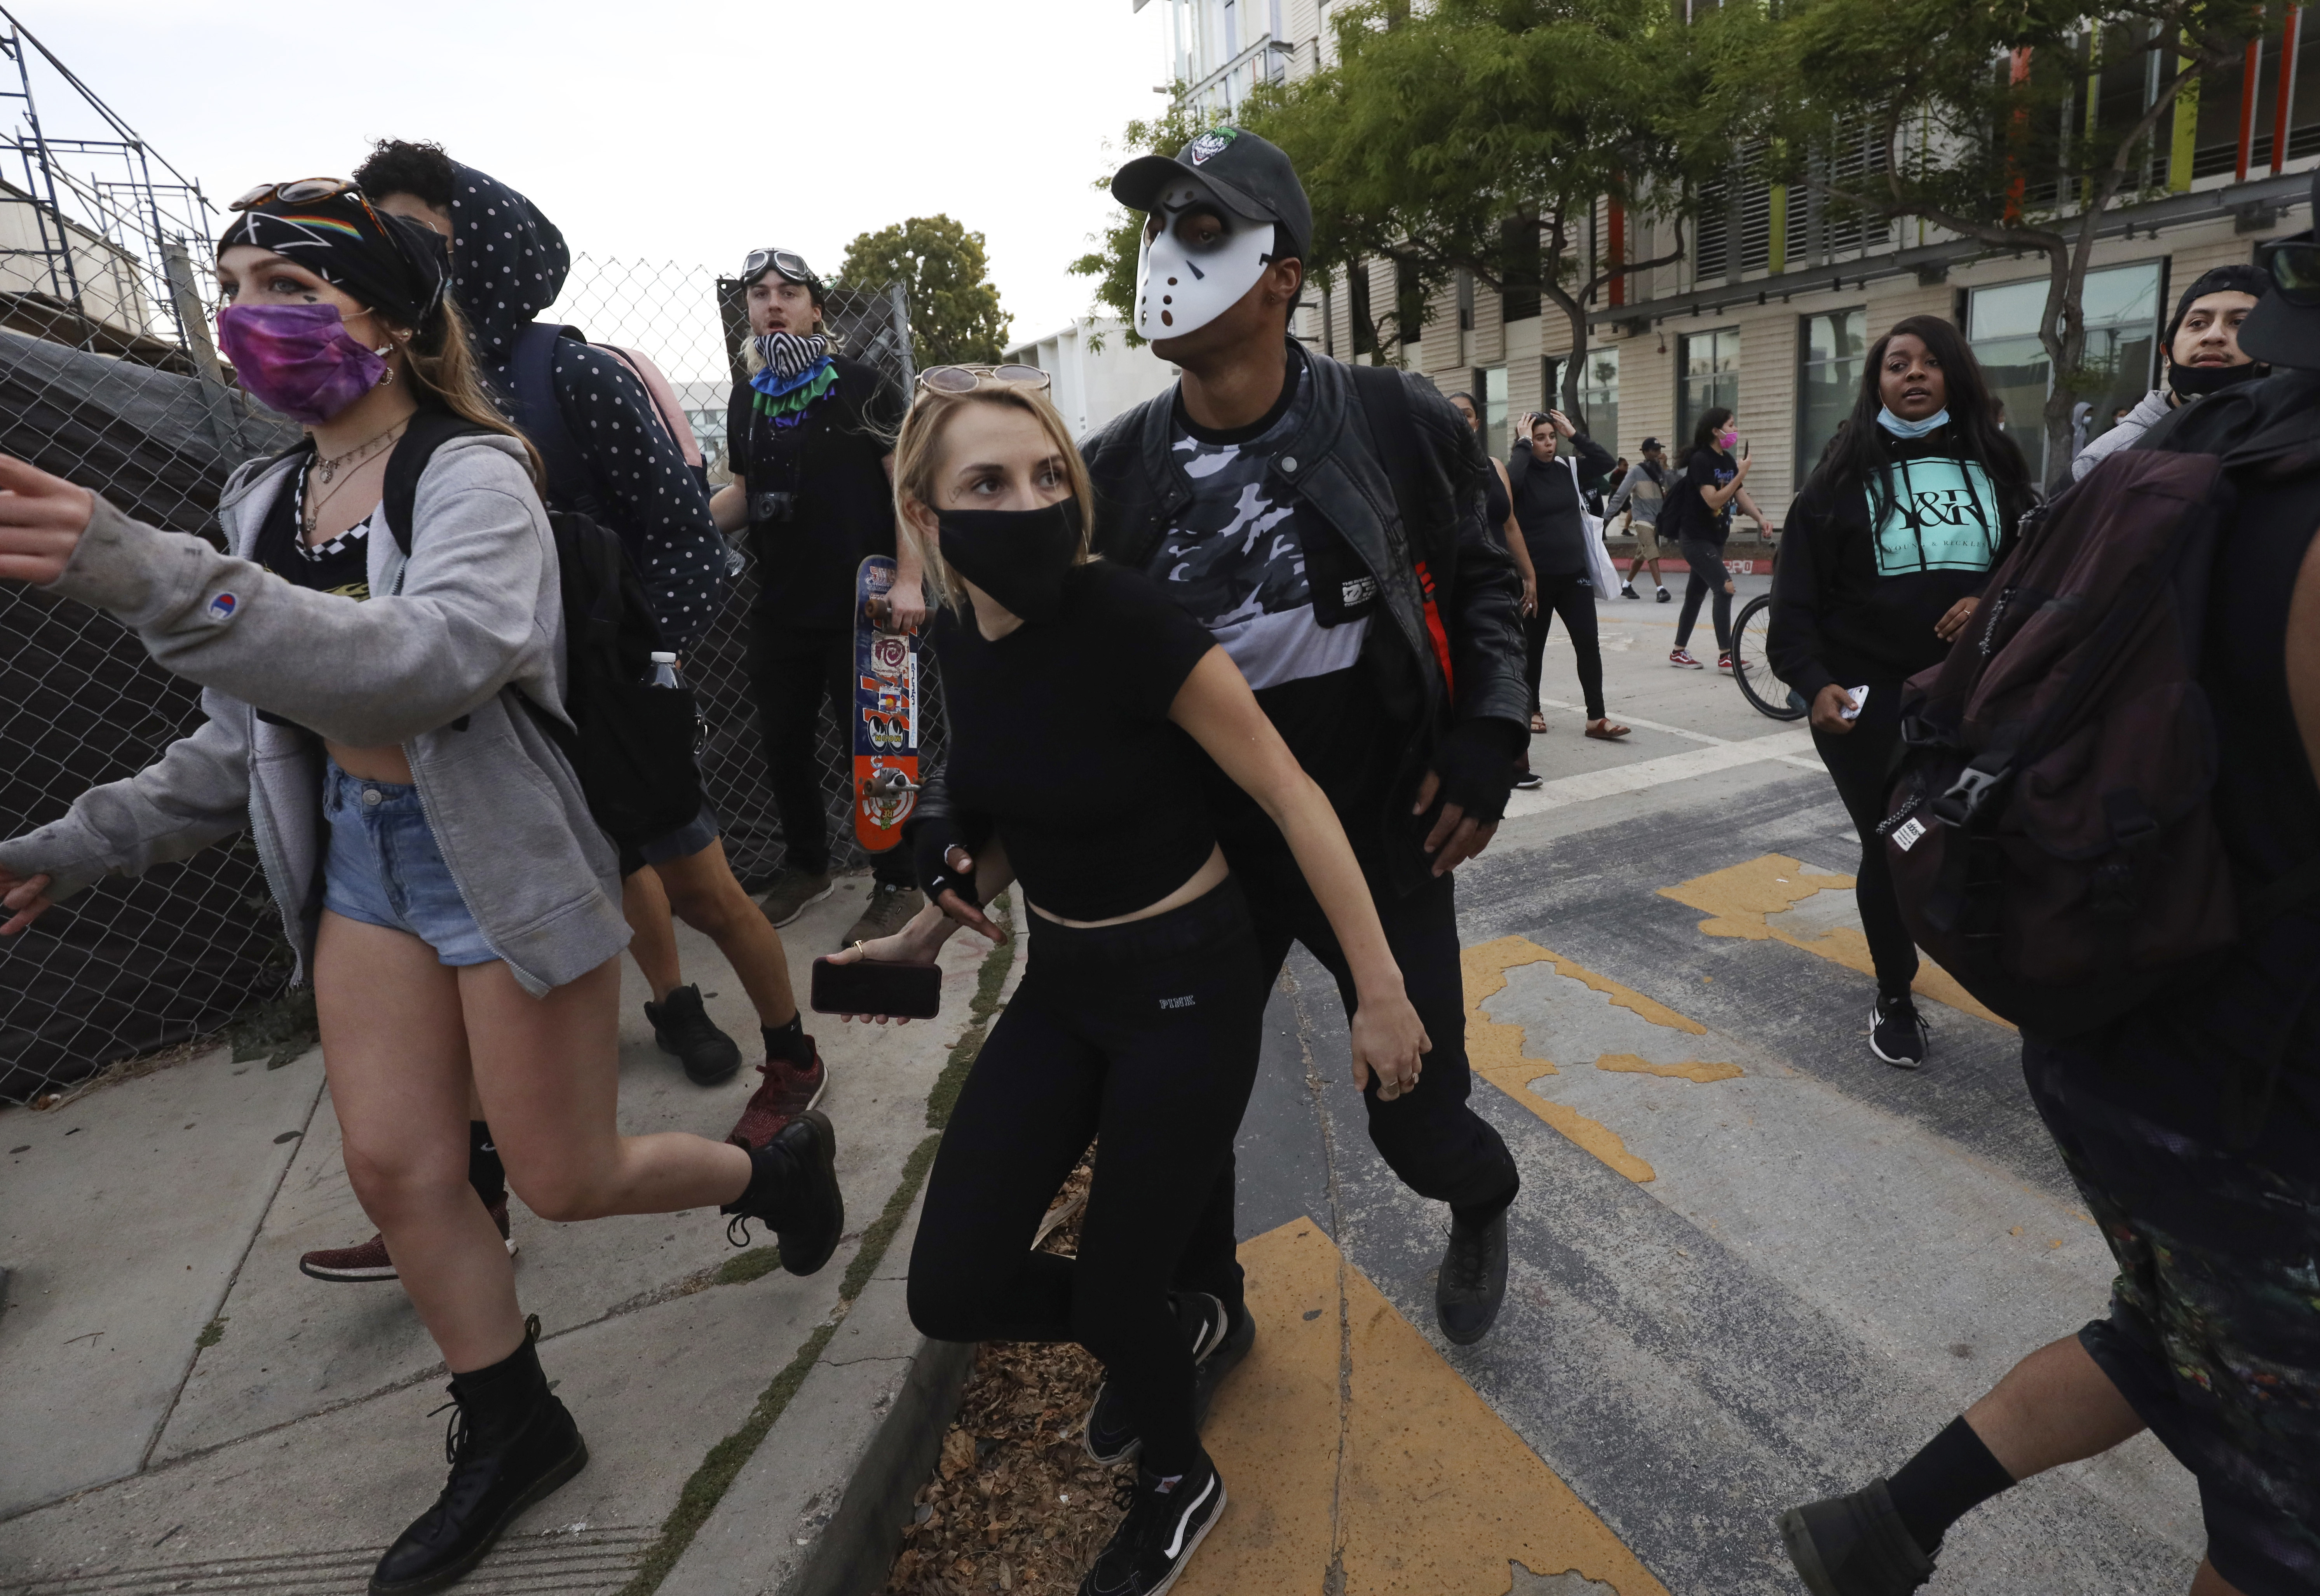 Protesters head away from police in Santa Monica, Calif., Sunday, May 31, 2020, during a demonstration over the death of George Floyd, who died May 25 after he was pinned at the neck by a Minneapolis police officer.  (AP Photo/ Christian Monterrosa)